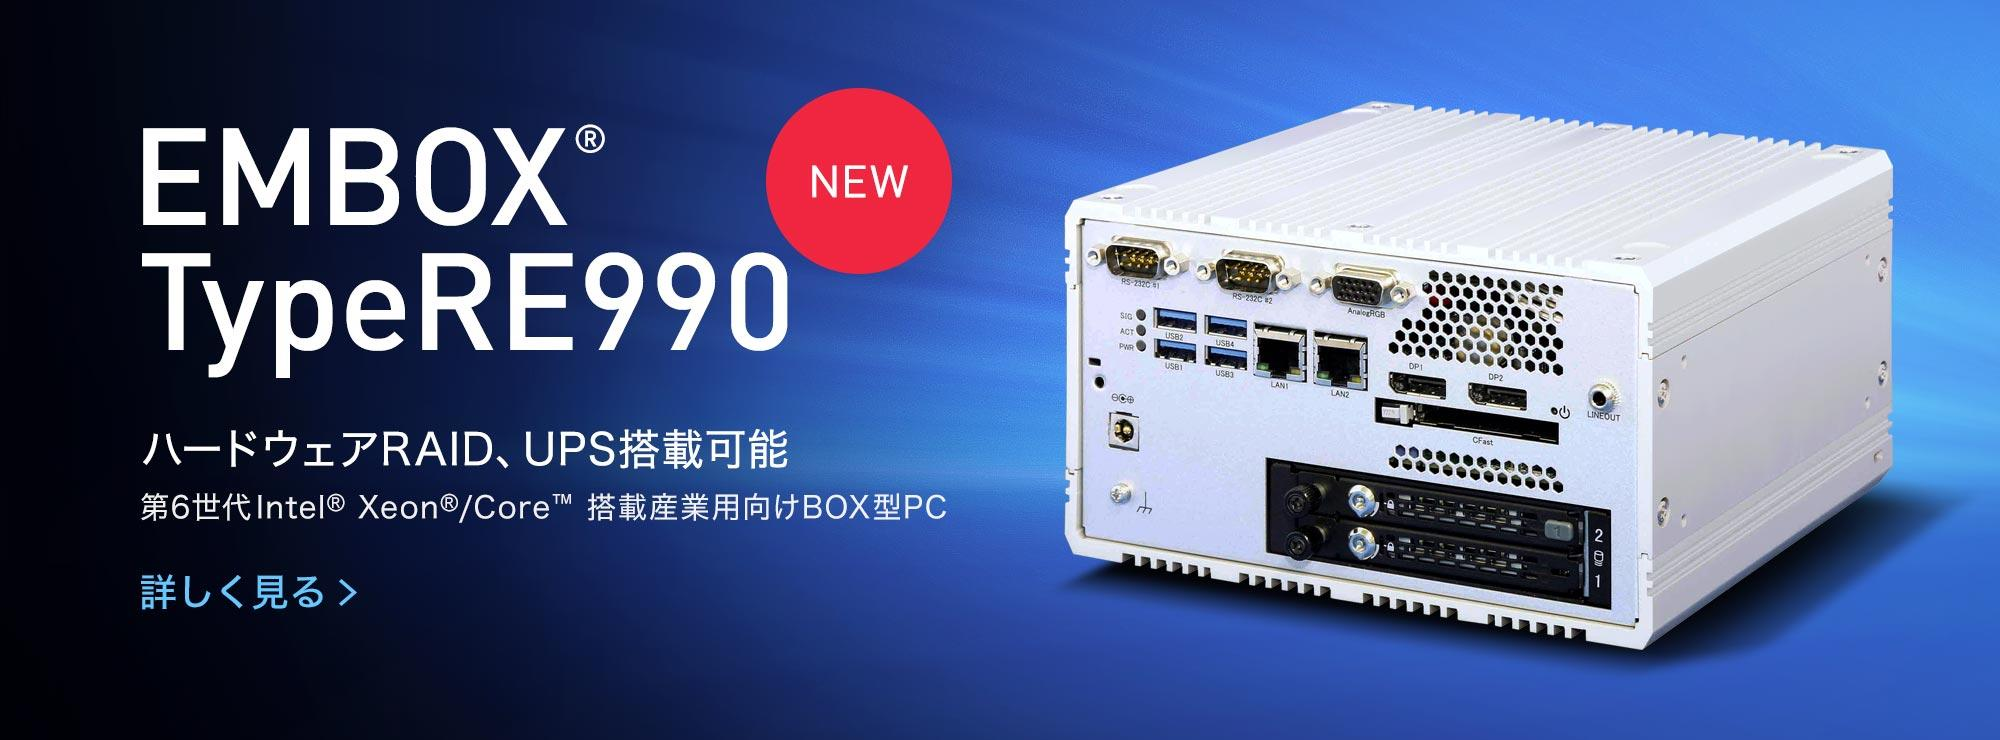 PC_EMBOX-Type-RE990